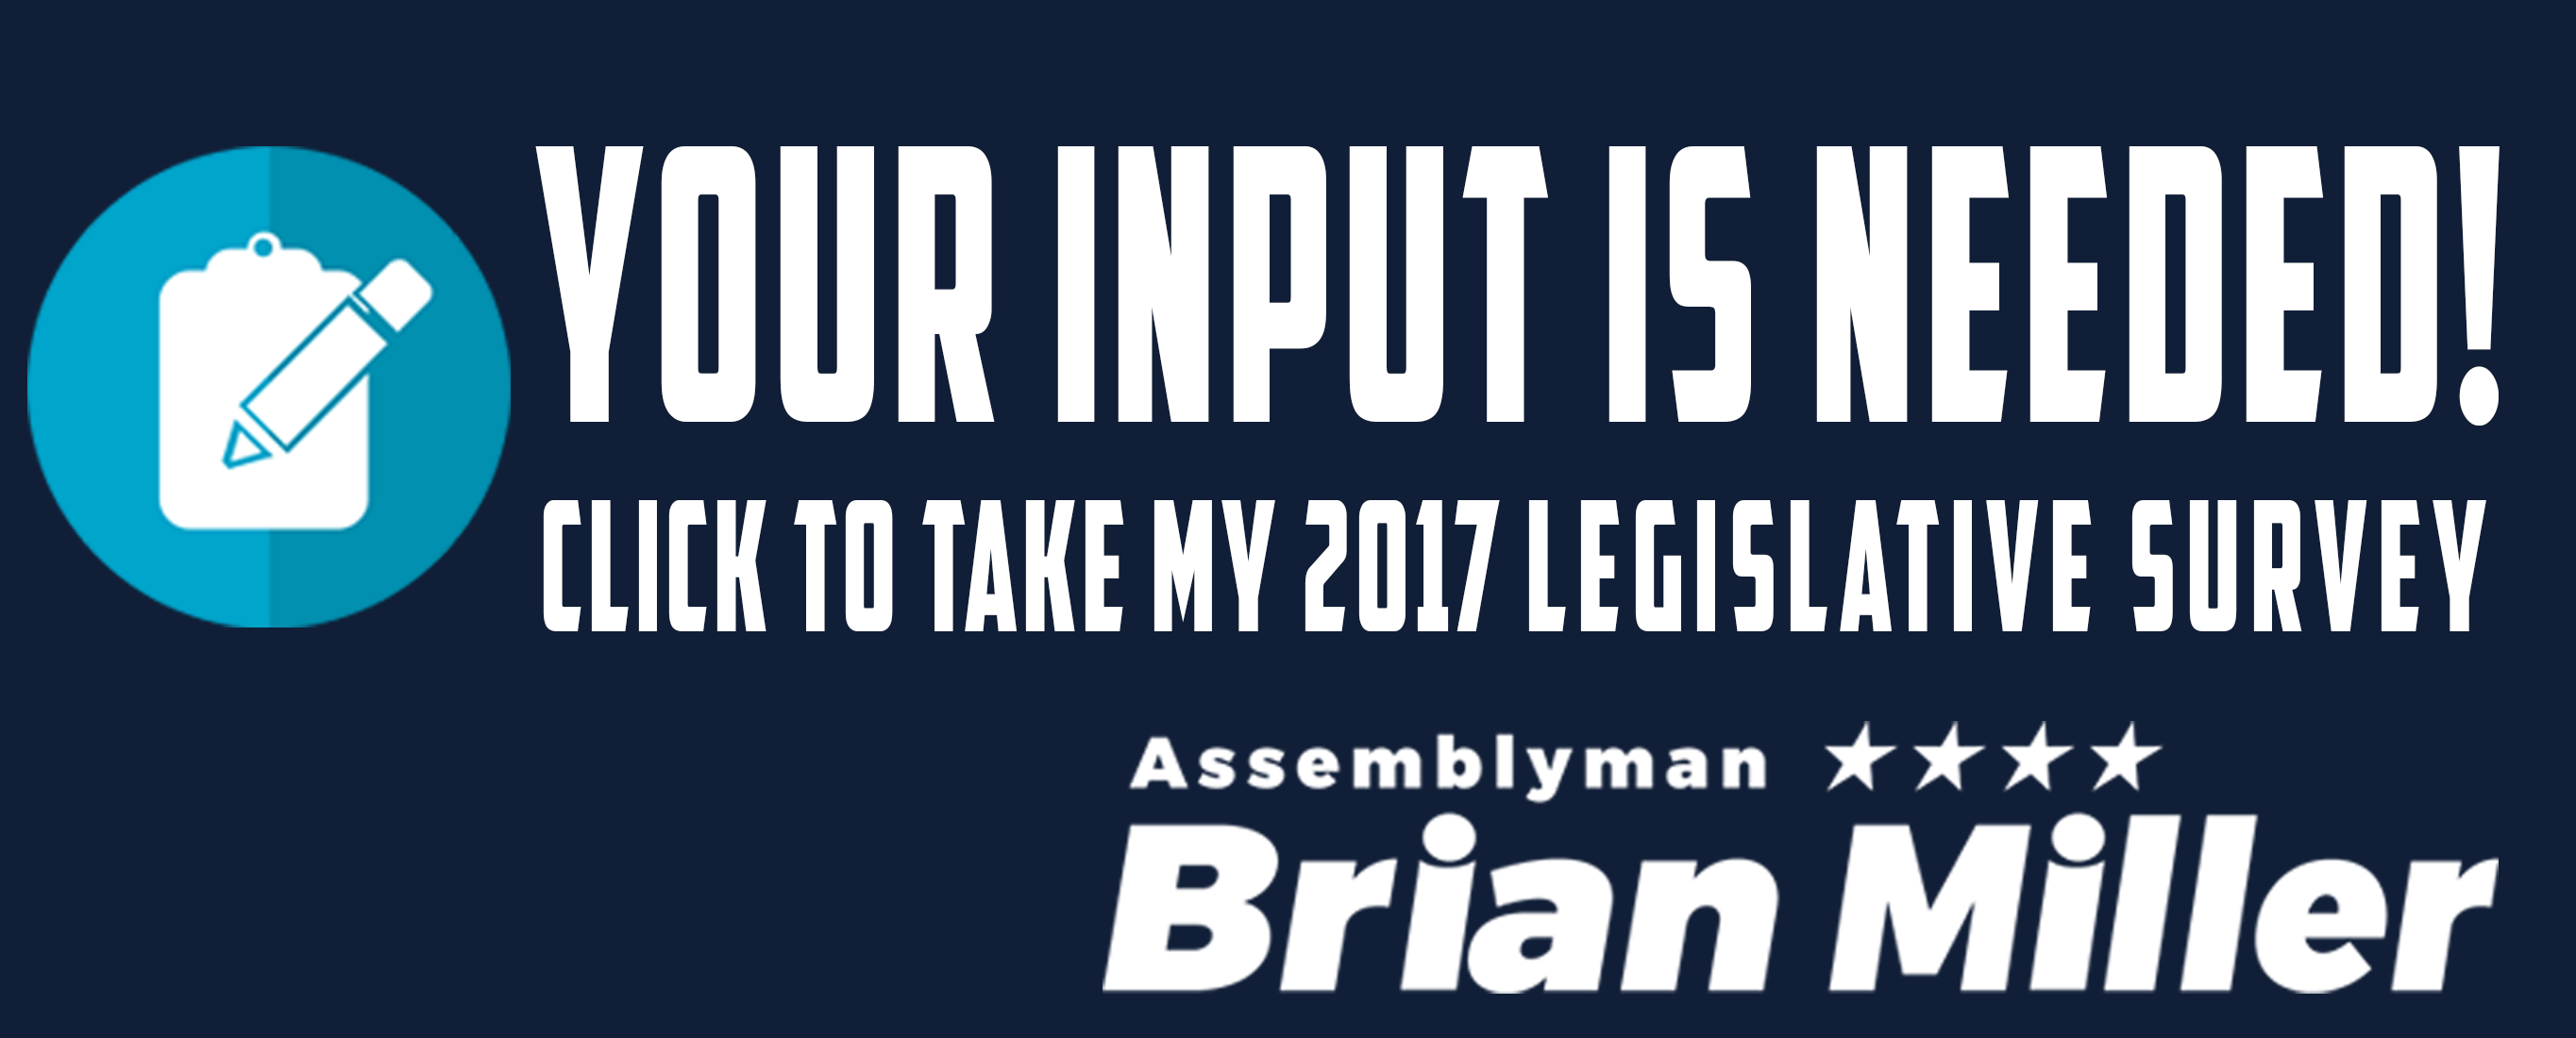 2017 Legislative Survey